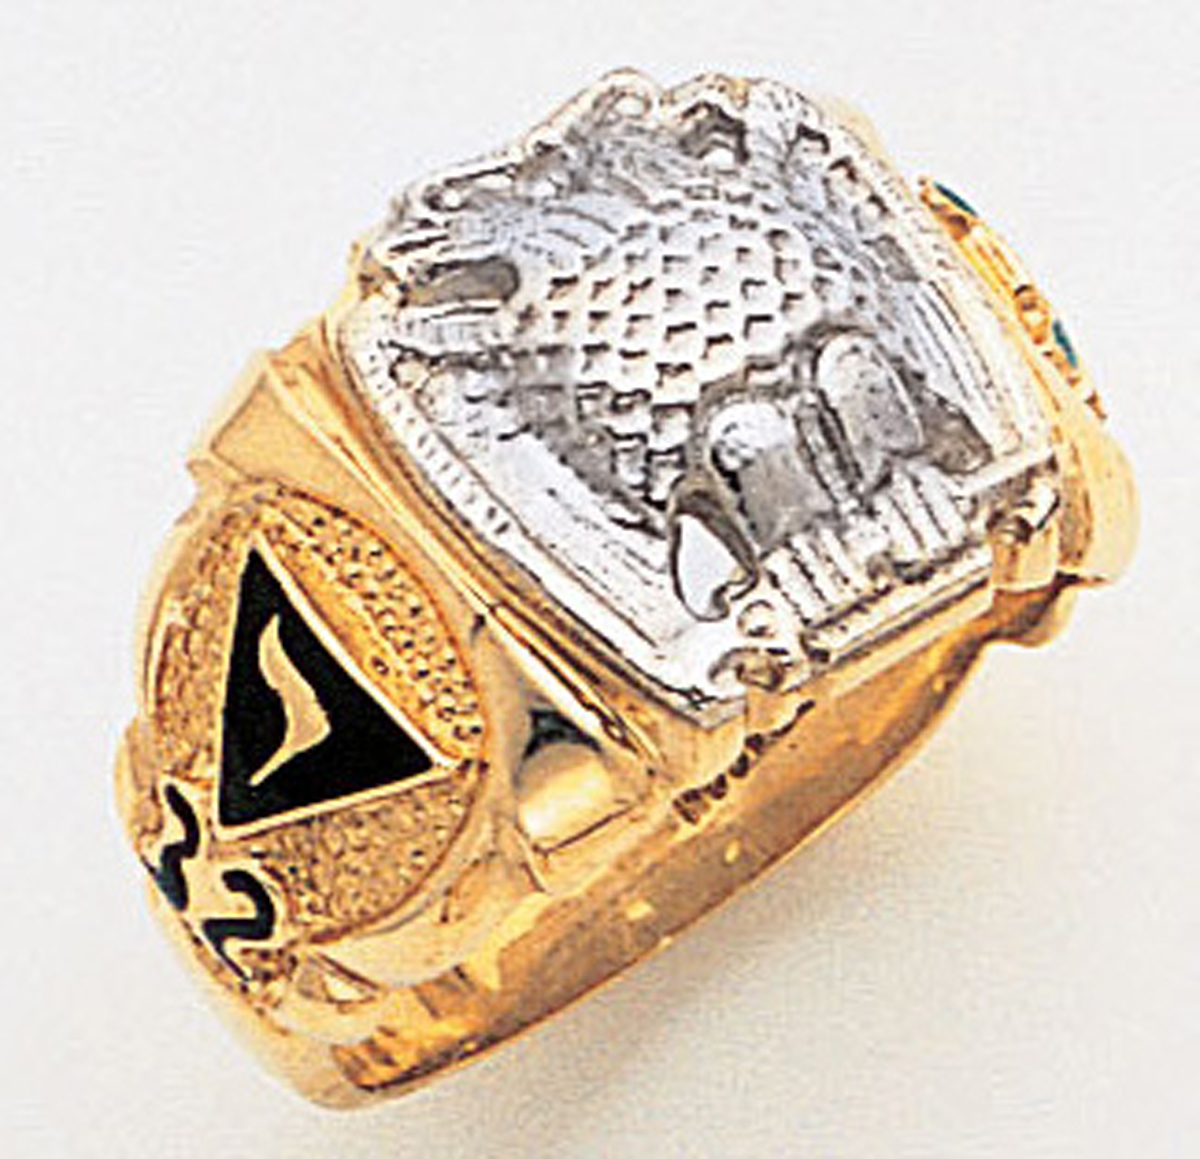 Masonic 32 Degree Scottish Rite Ring Macoy Publishing Masonic Supply 3375